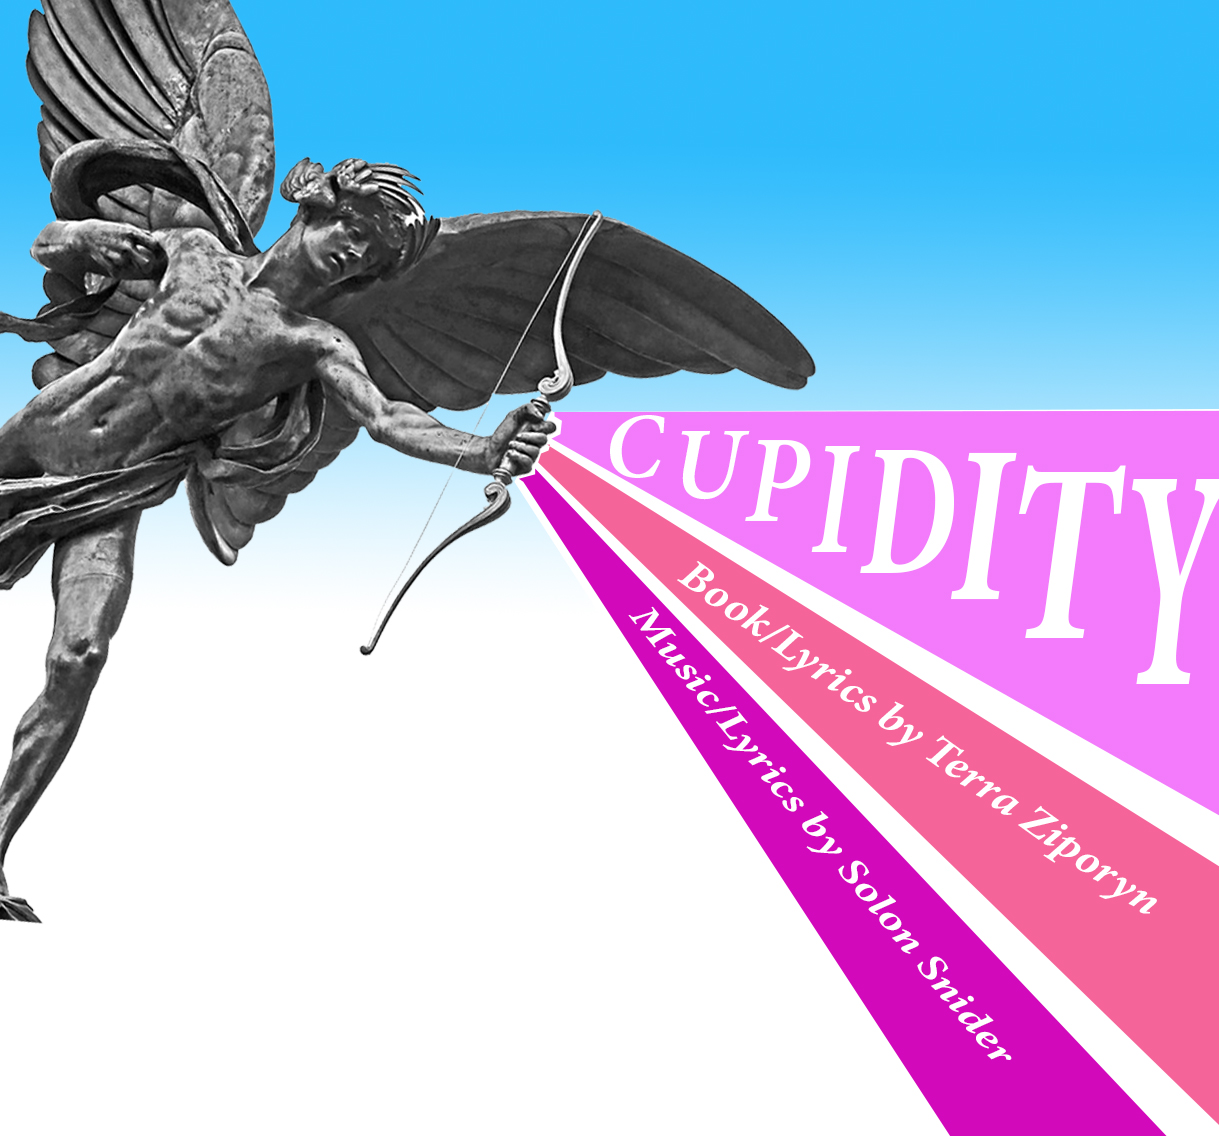 Cupidity Poster Final